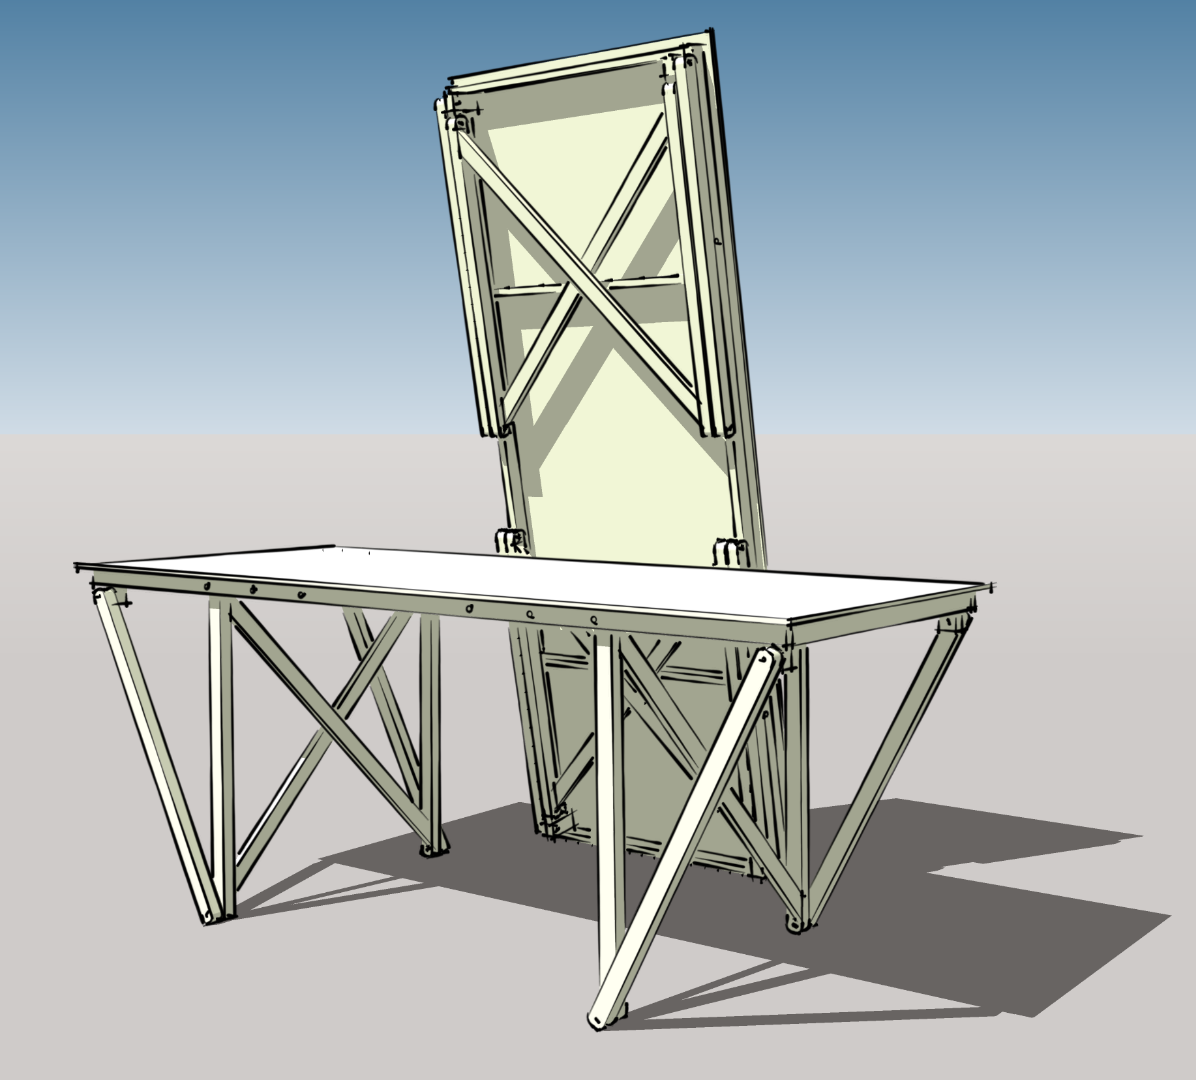 A Folding and Steady Work Bench